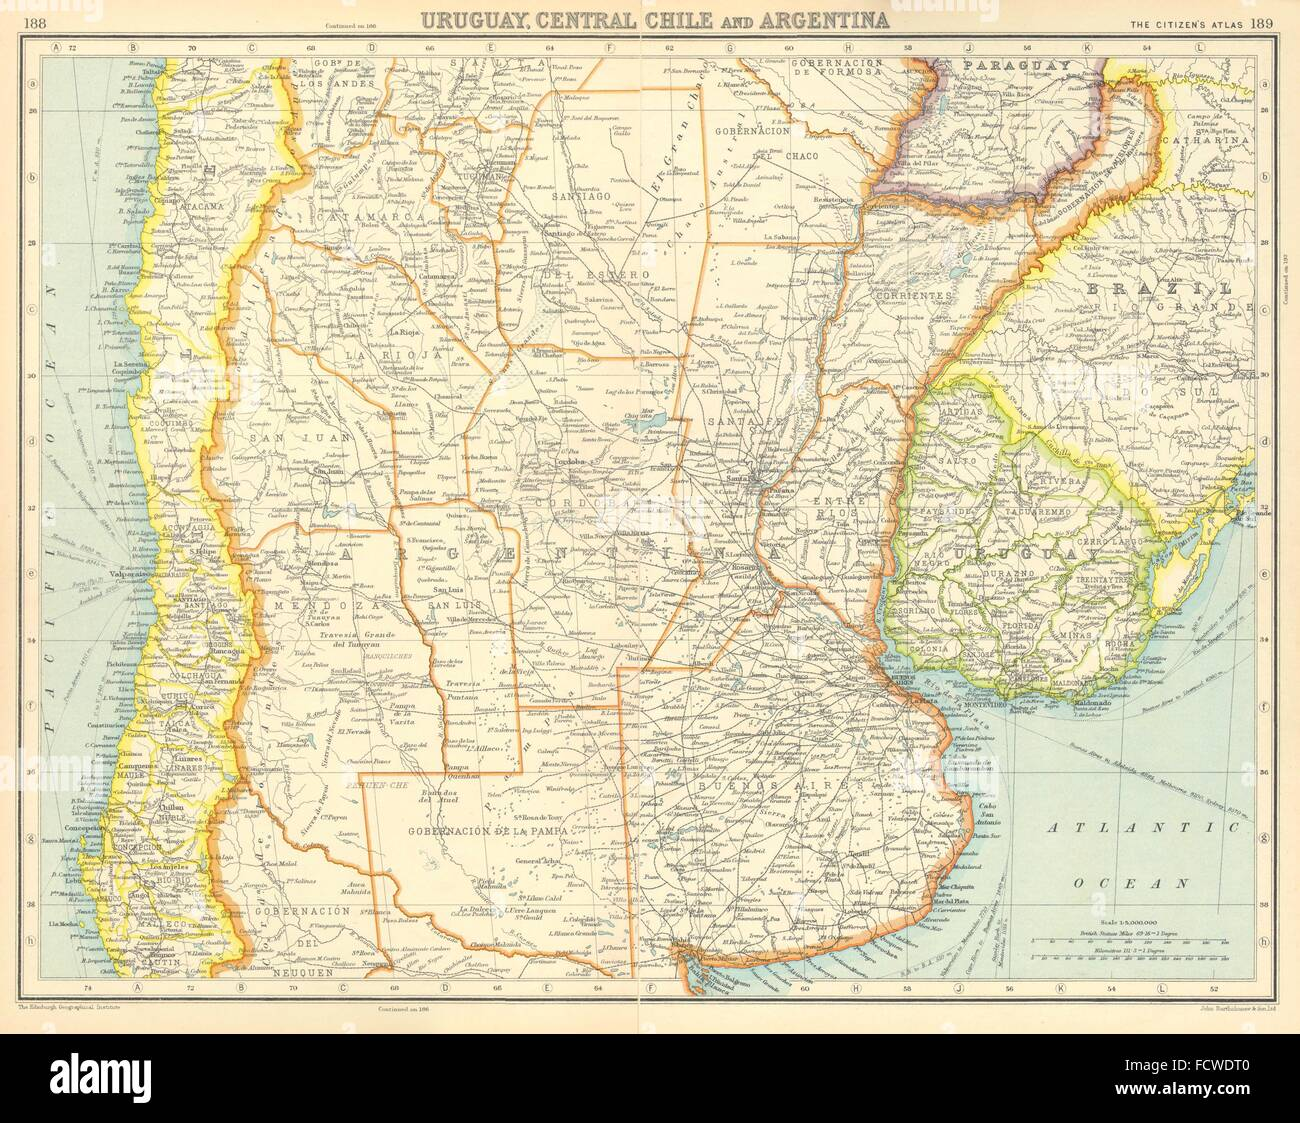 Central And South America Map Stock Photos & Central And ... on haiti map, mexico map, italy map, australia map, india map, belize map, panama map, croatia map, africa map, uruguay map, morocco map, asia map, ecuador map, western hemisphere map, europe map, middle east map, zimbabwe map, spain map, costa rica map, argentina map,